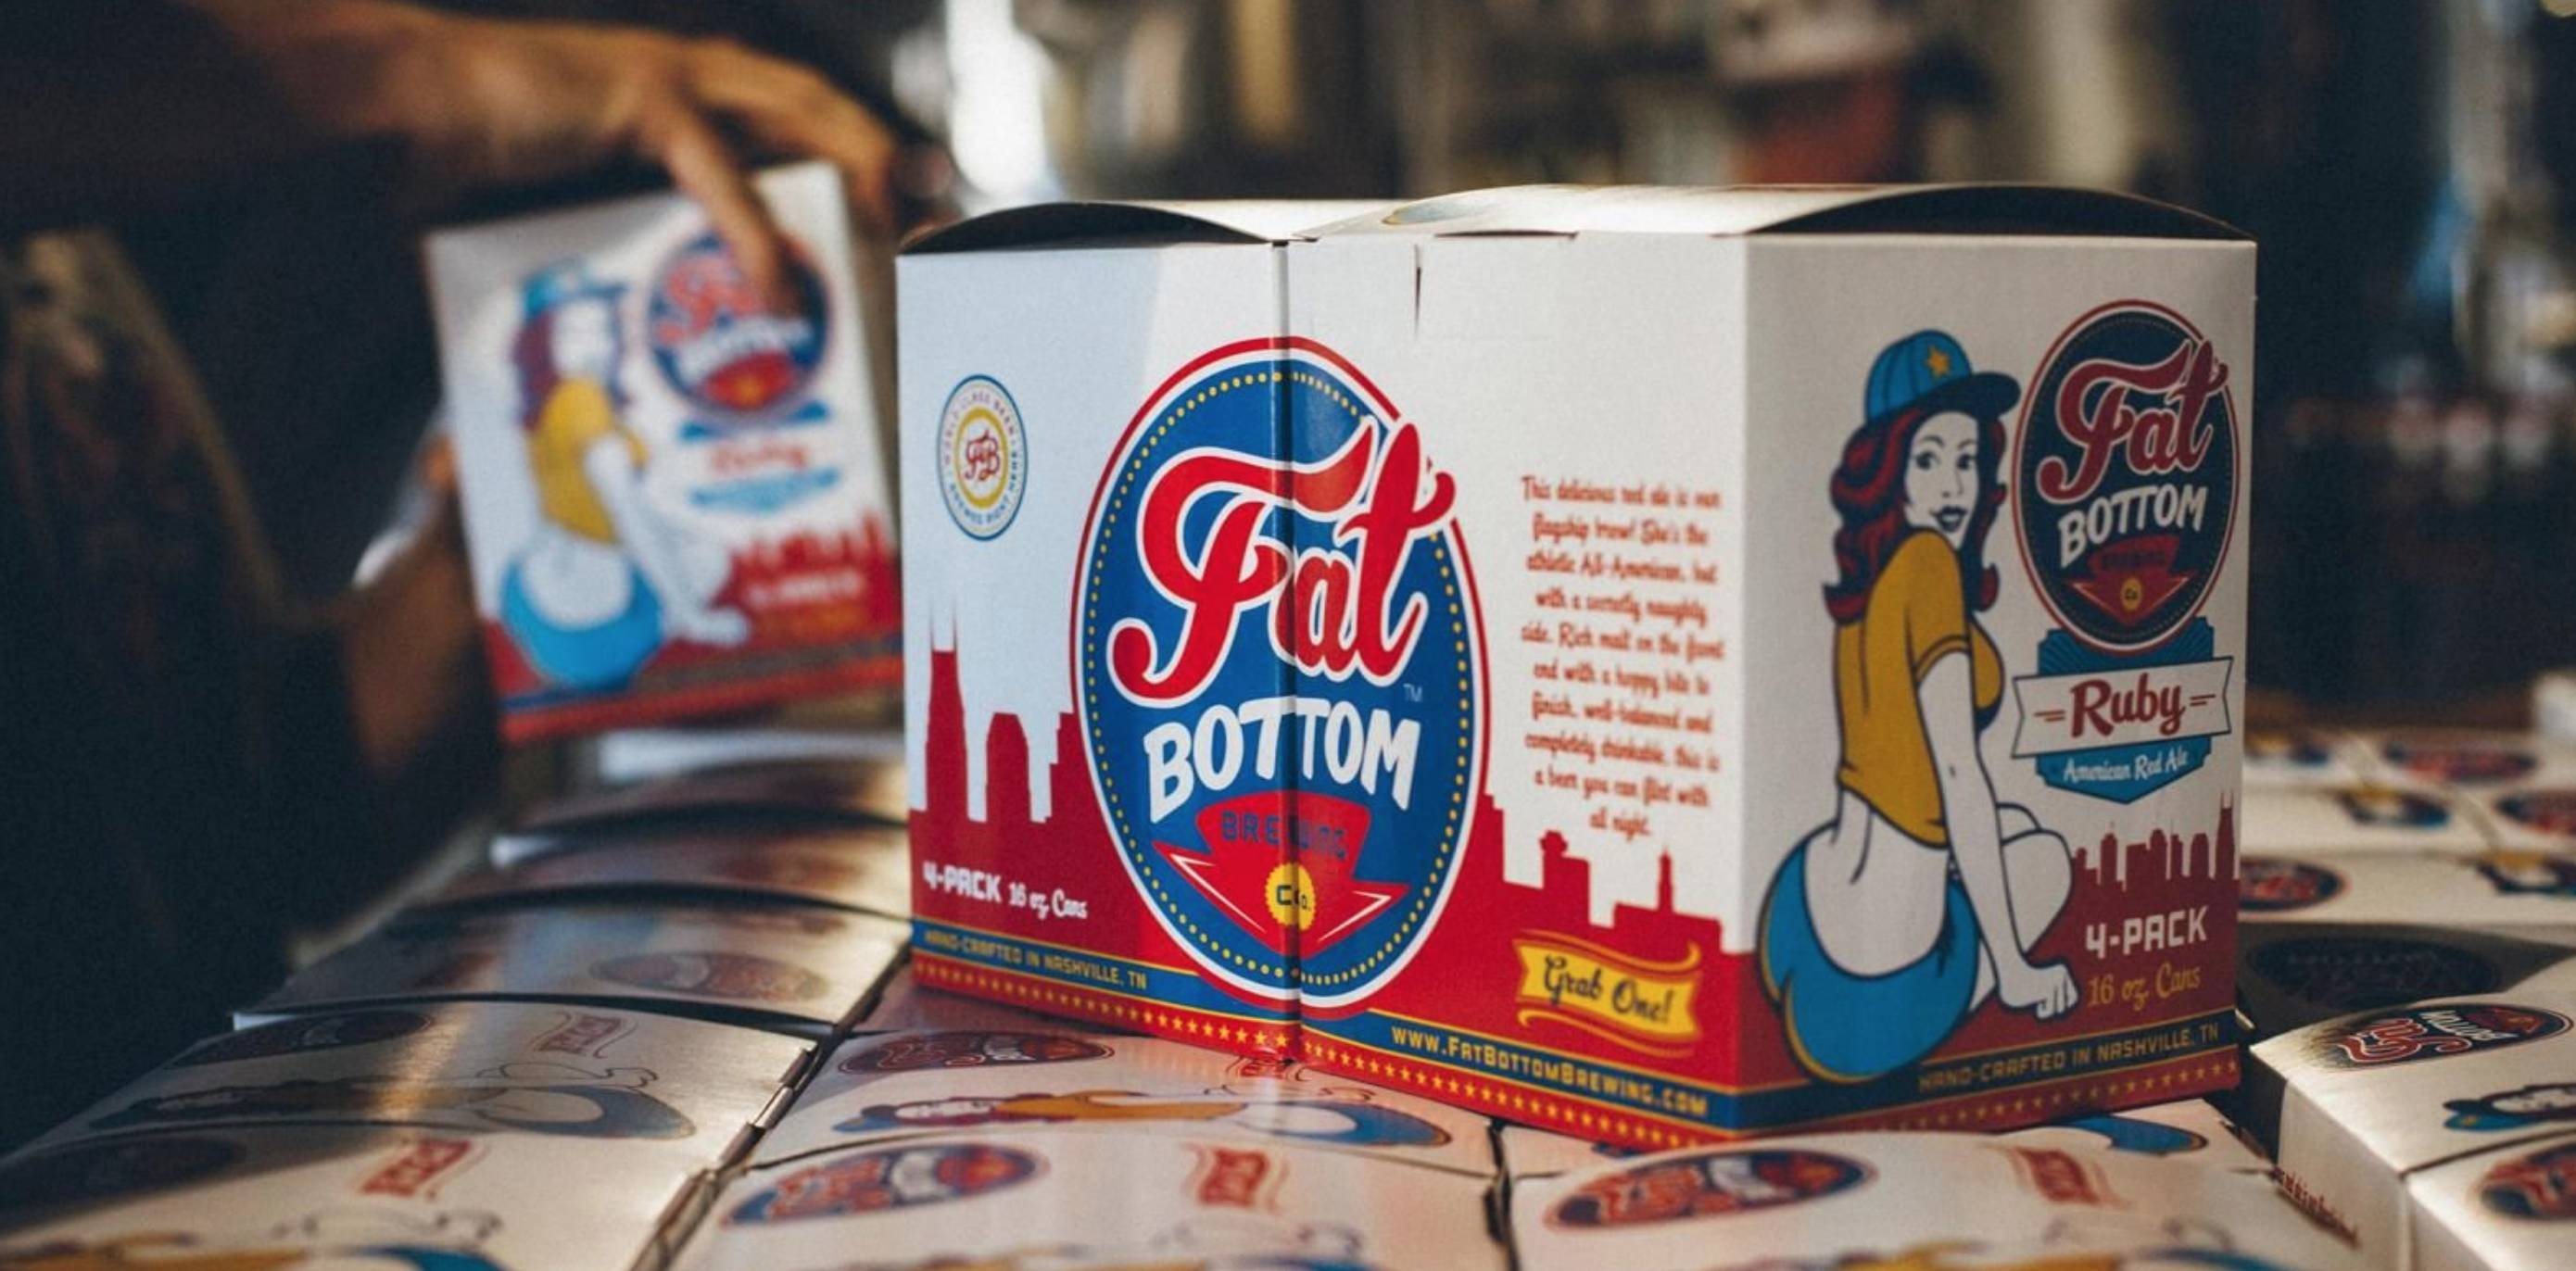 Fat Bottom Launch Party